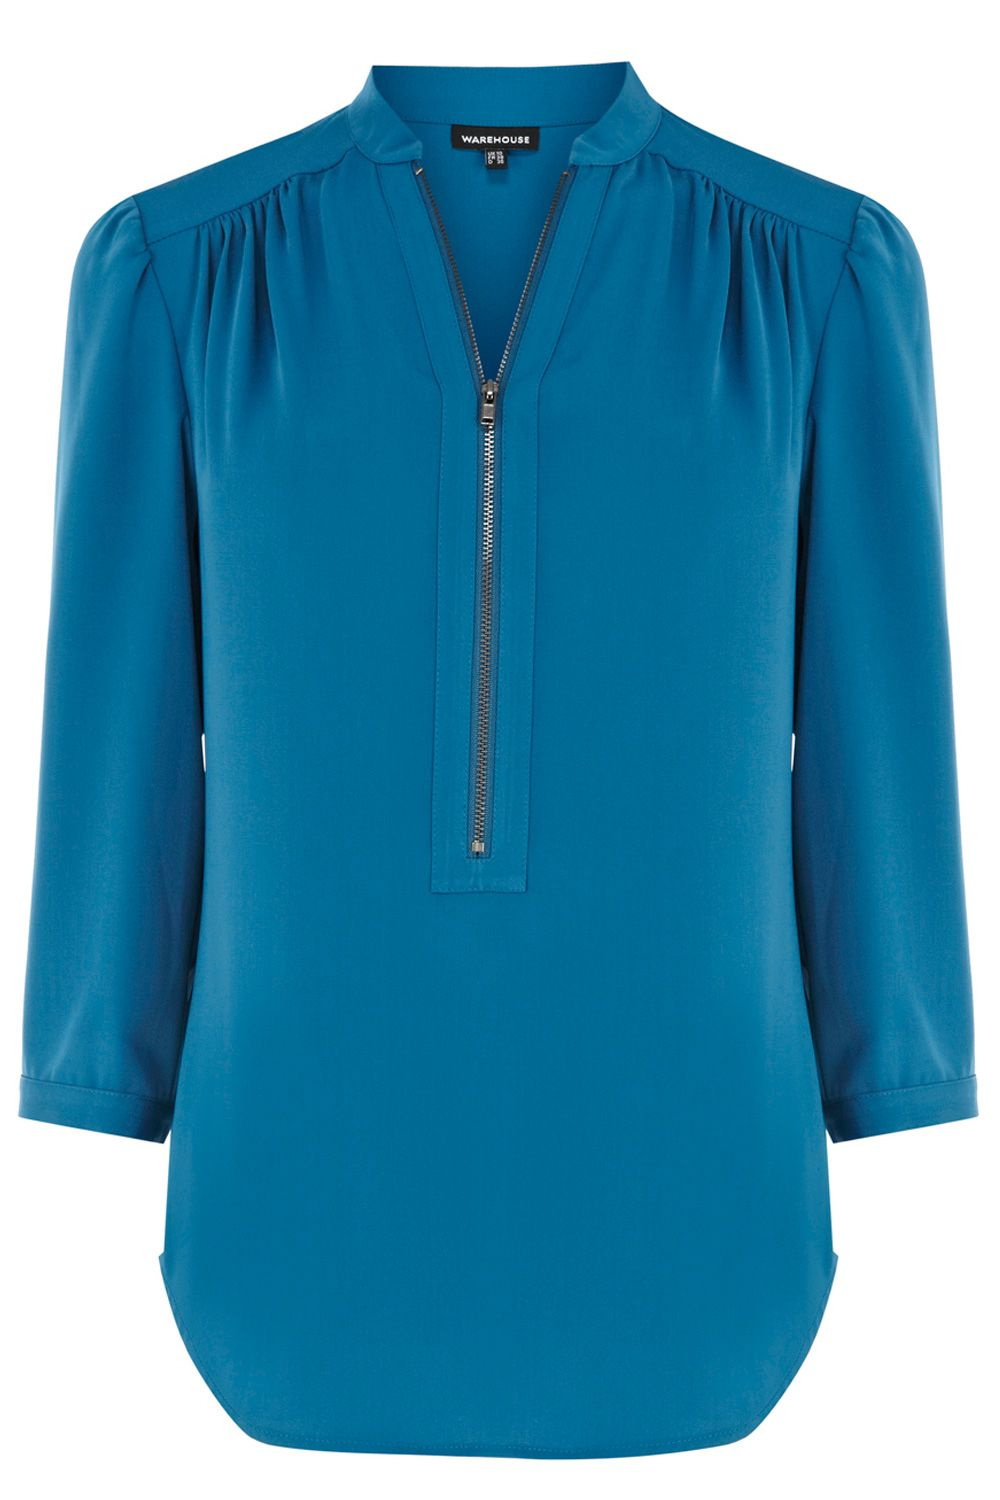 Shirts & Blouses | Green ZIP FRONT BLOUSE | Warehouse